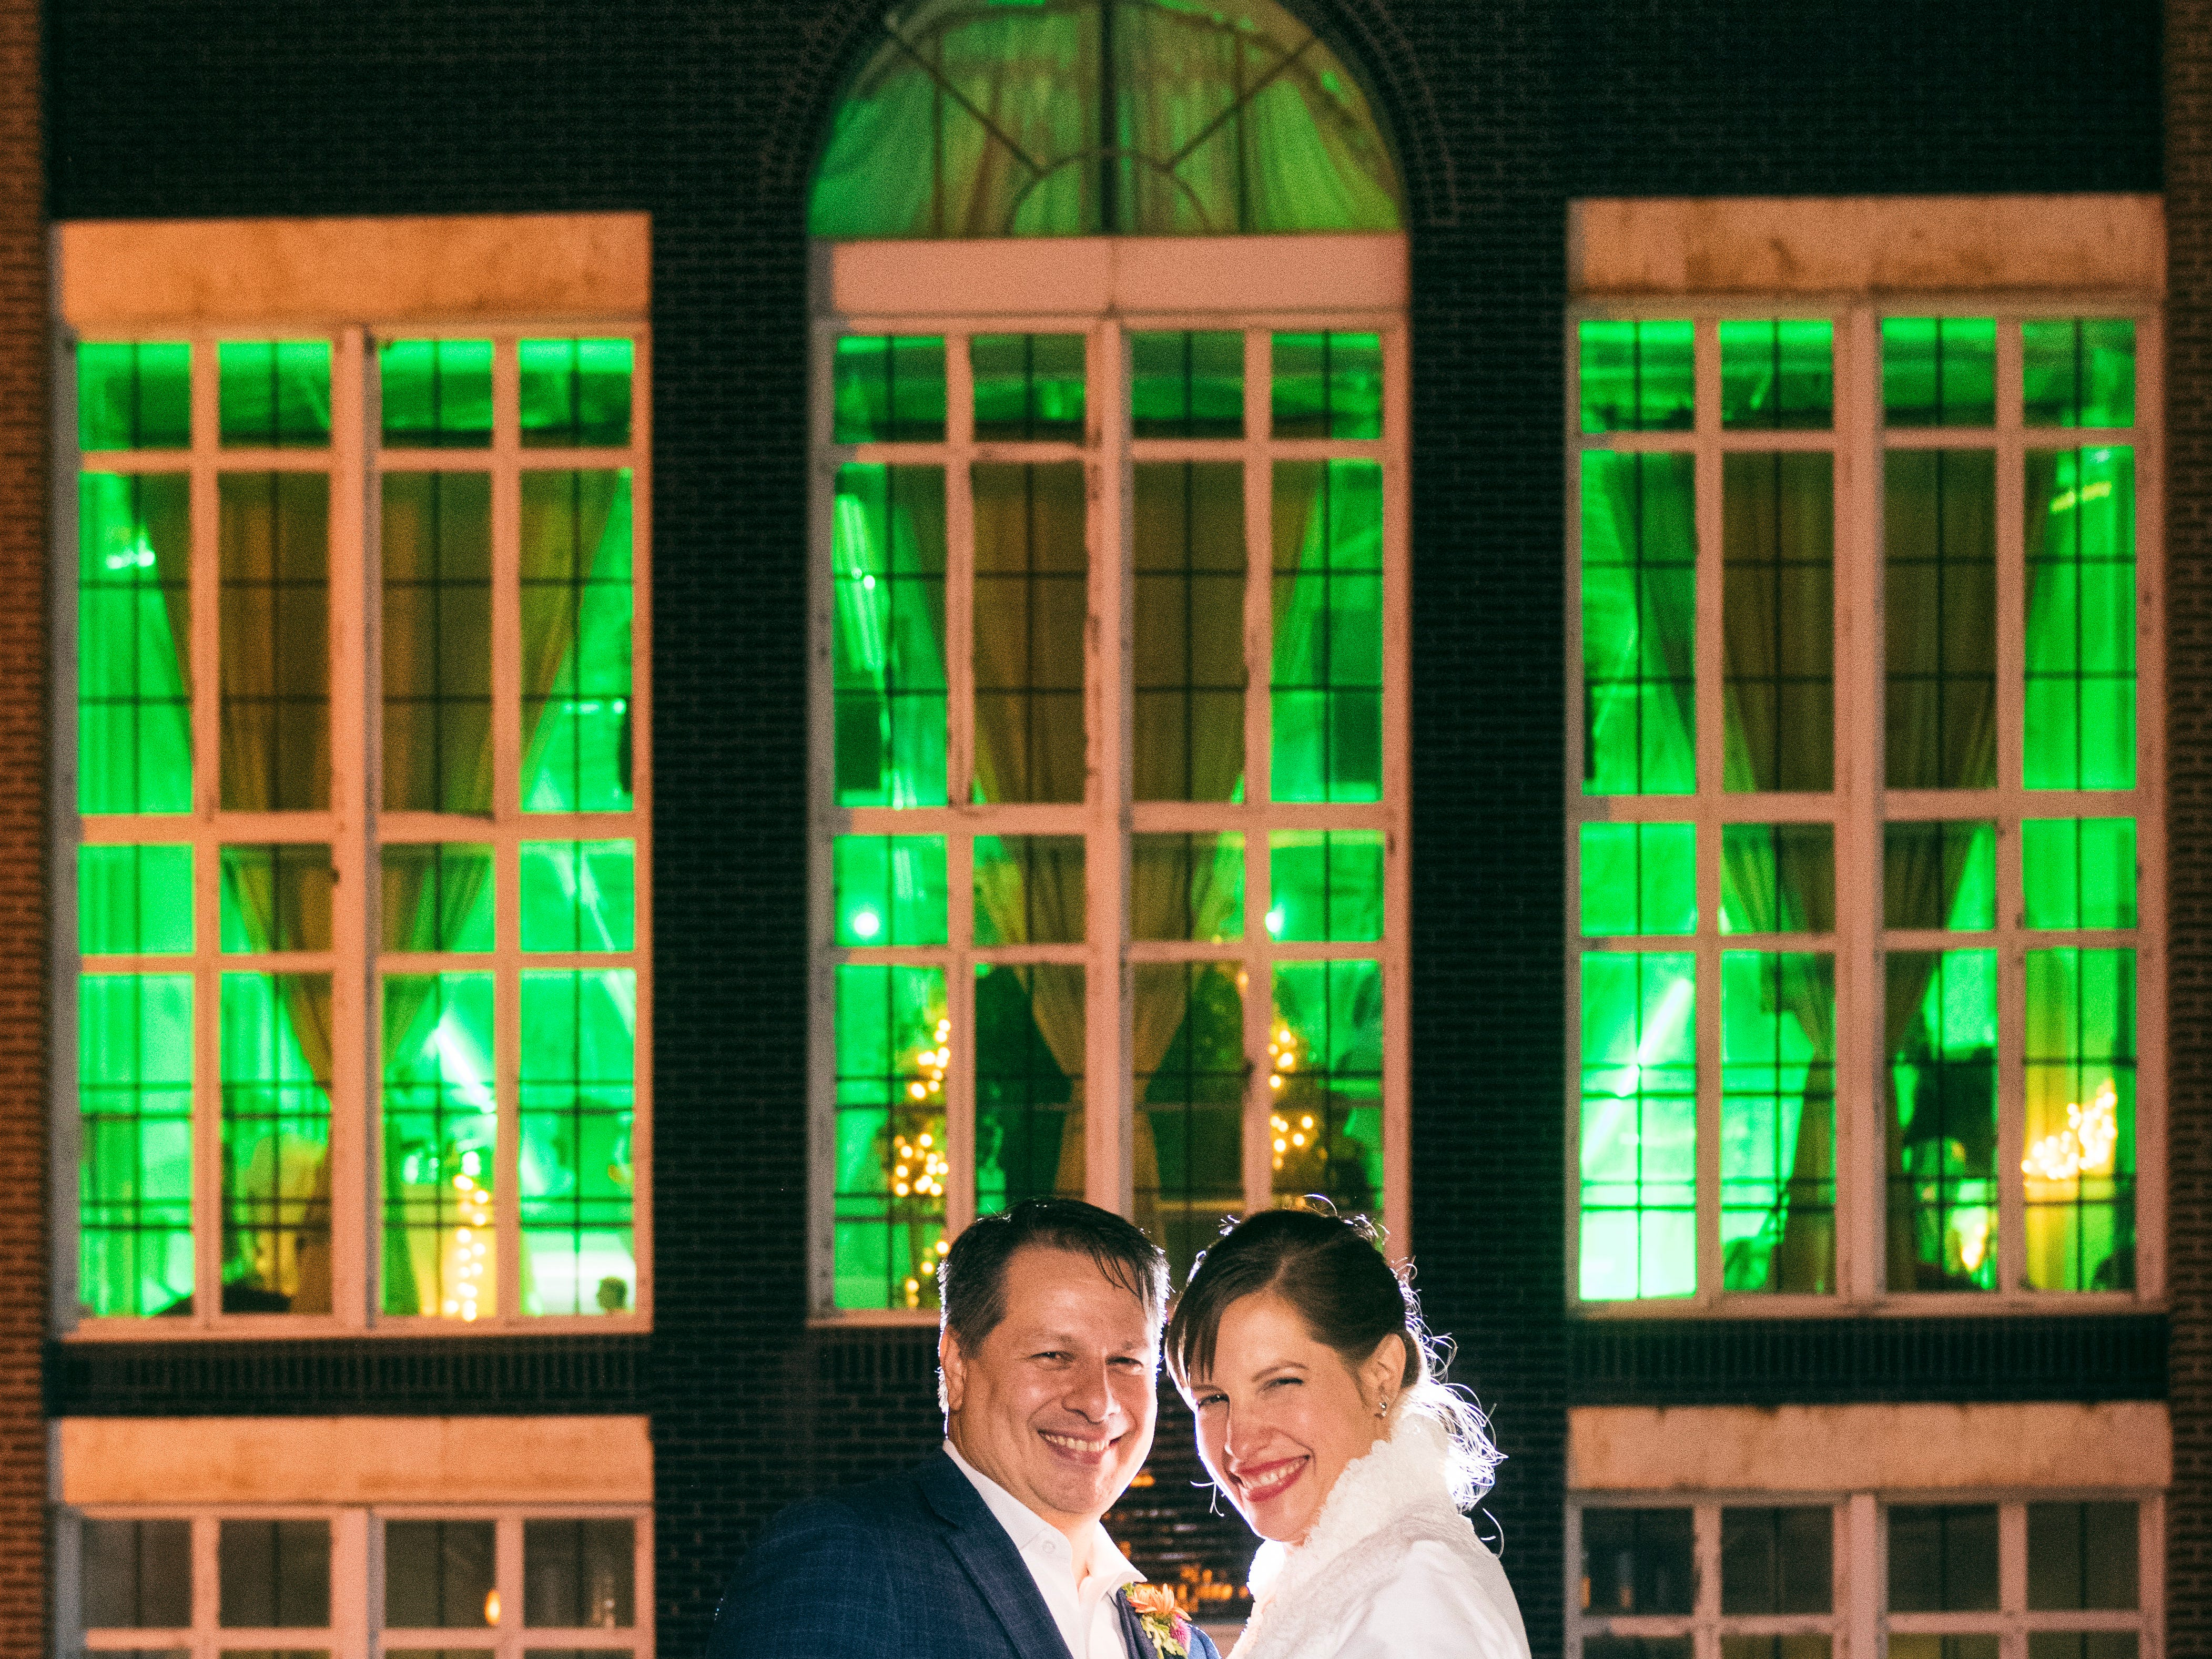 The wedding of Lauren Peters and Rob Matera at Opera Delaware in Wilmington.